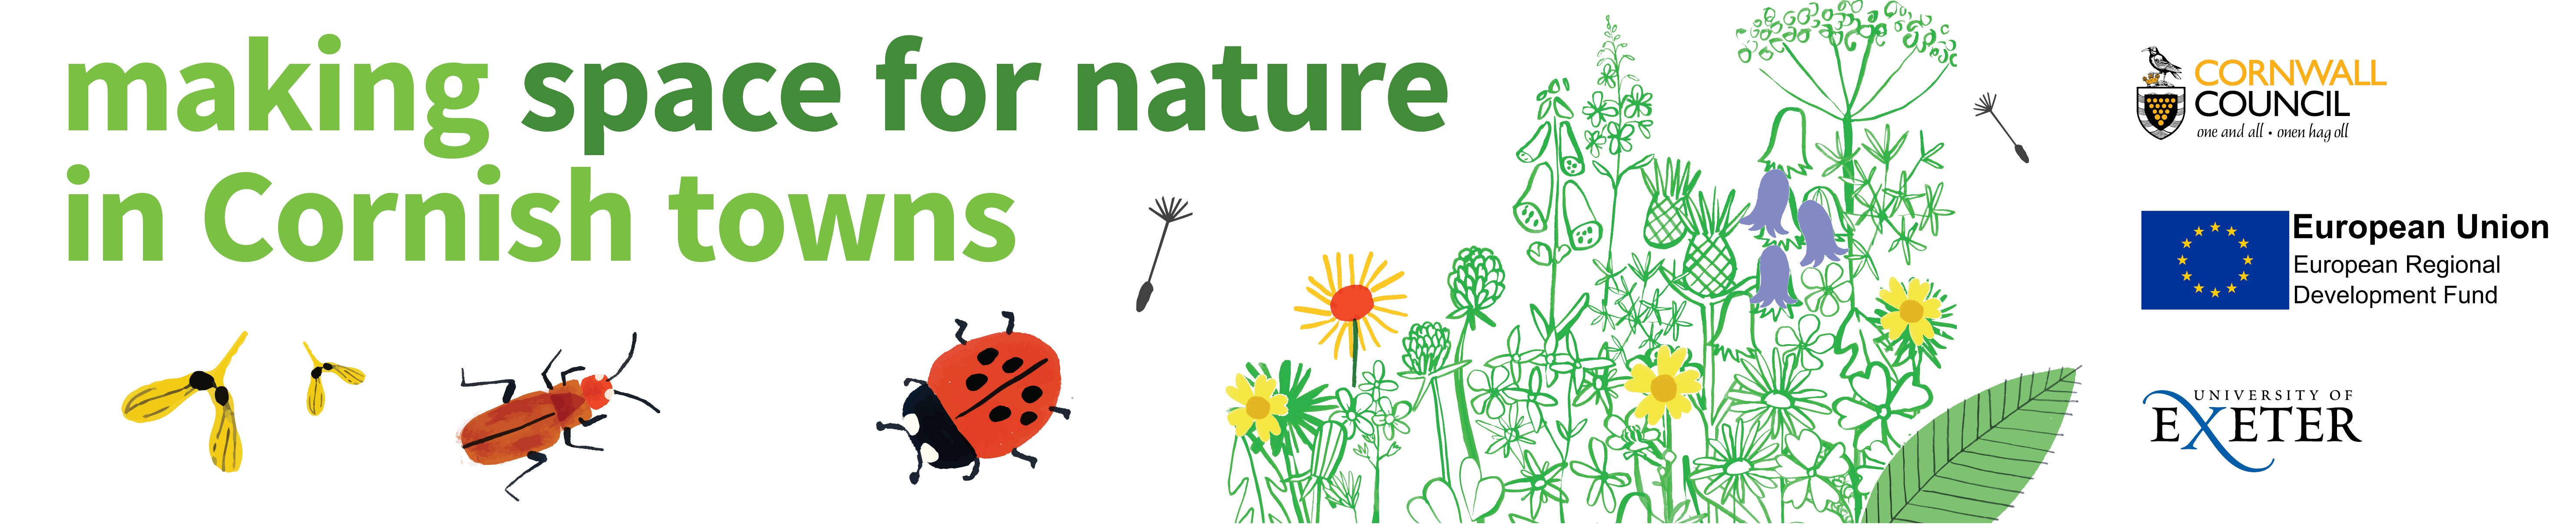 Making Space for Nature banner